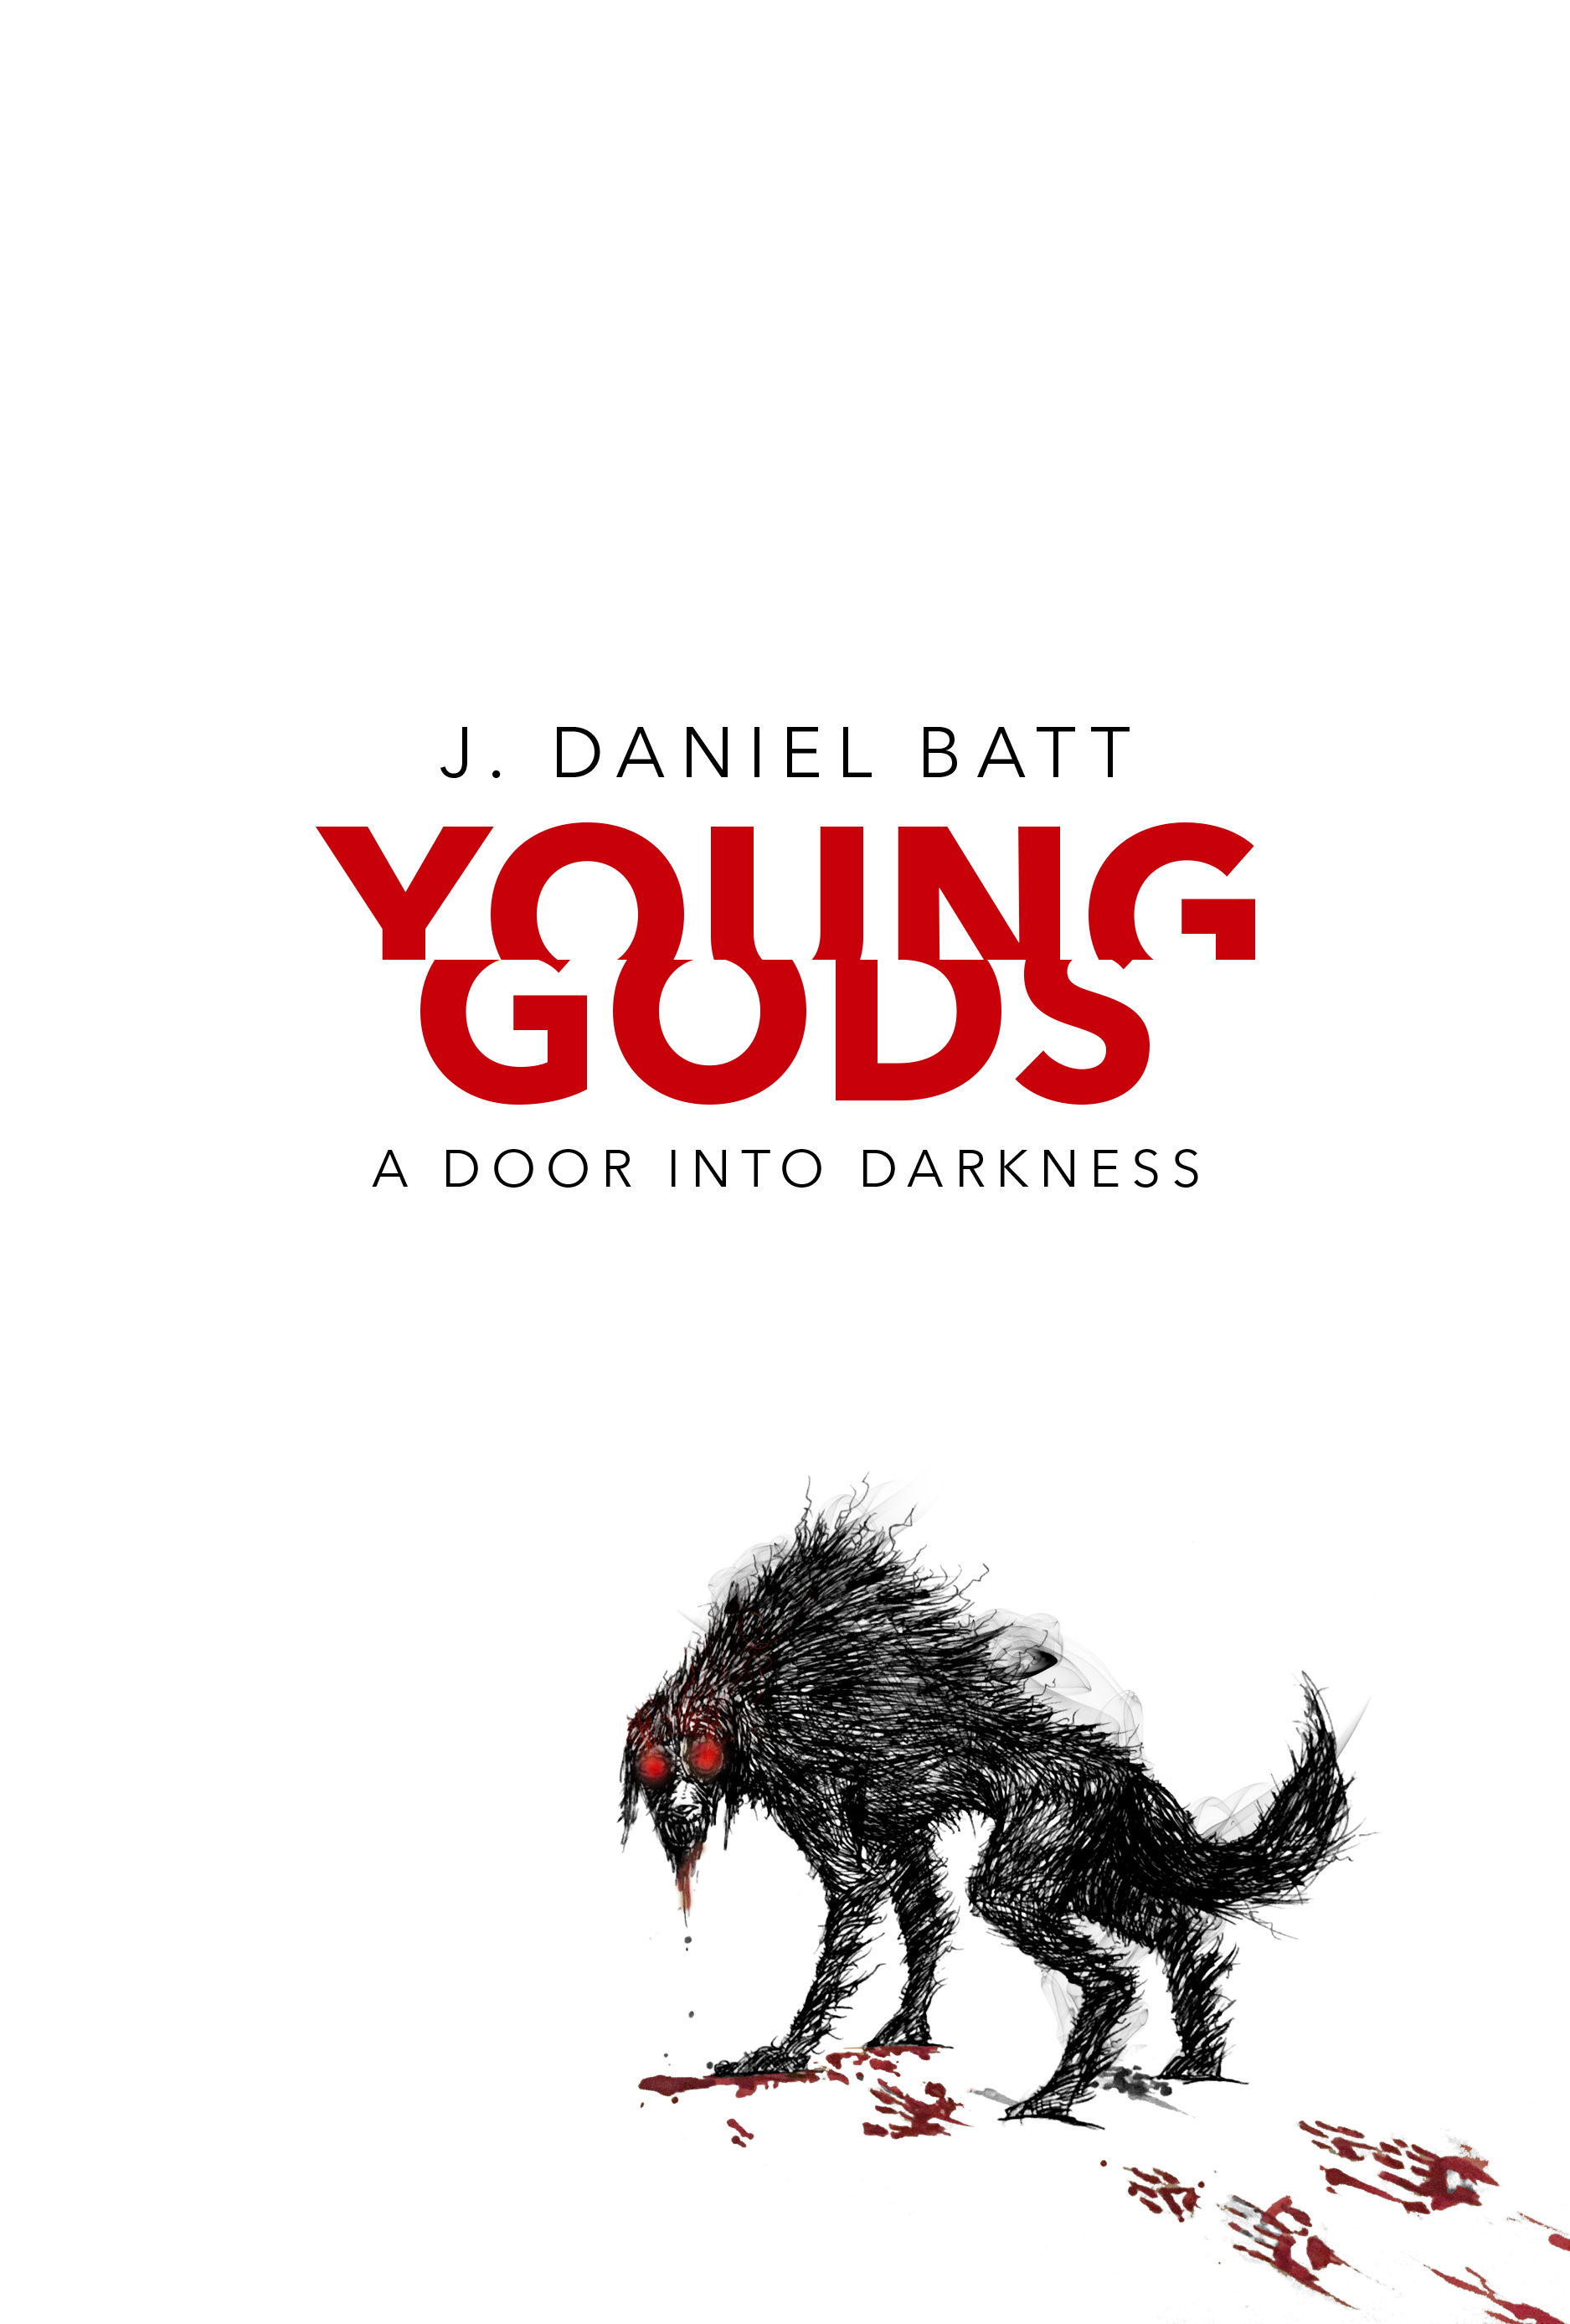 Sneak Peek at the Cover Artwork for YOUNG GODS Book I